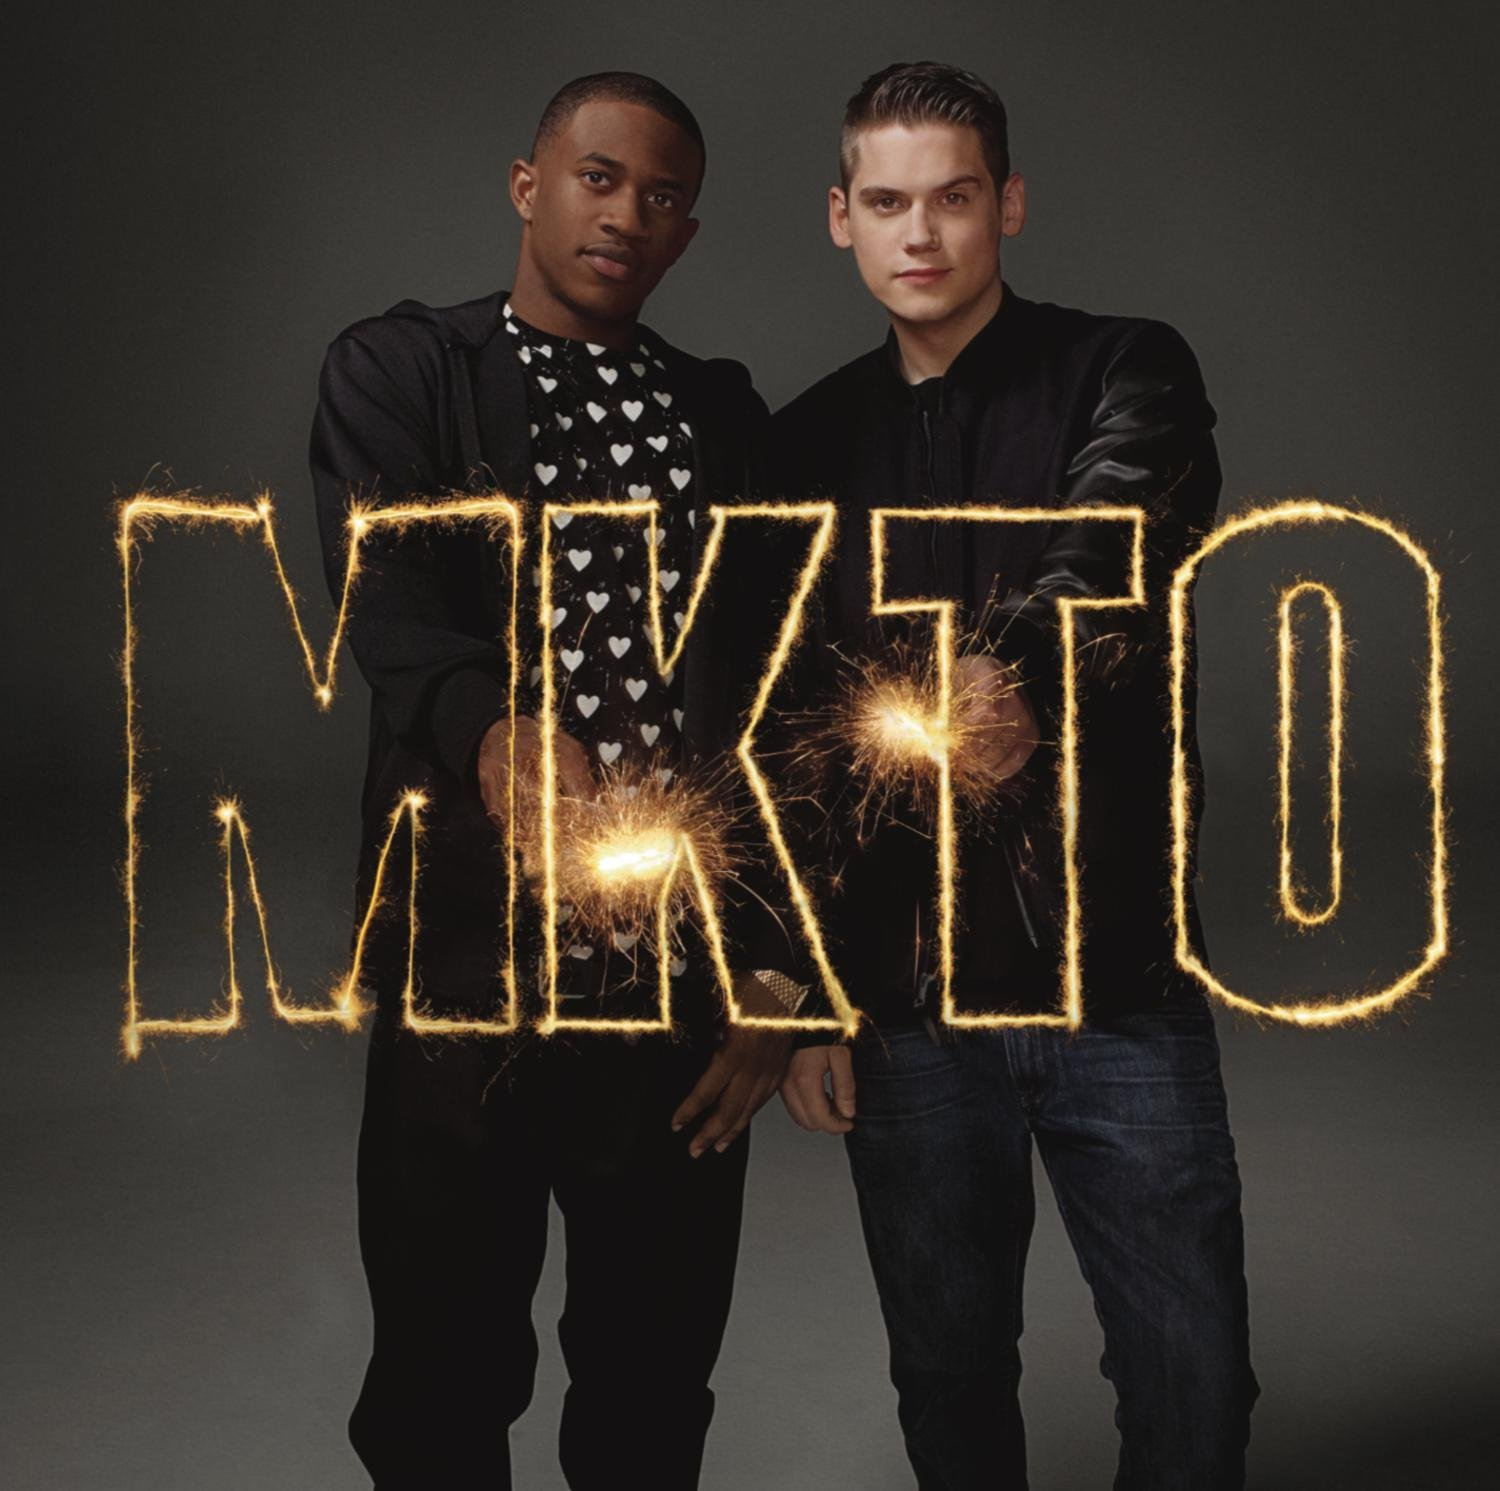 MKTO Delivers Worthwhile Pop Music on Self-Titled LP